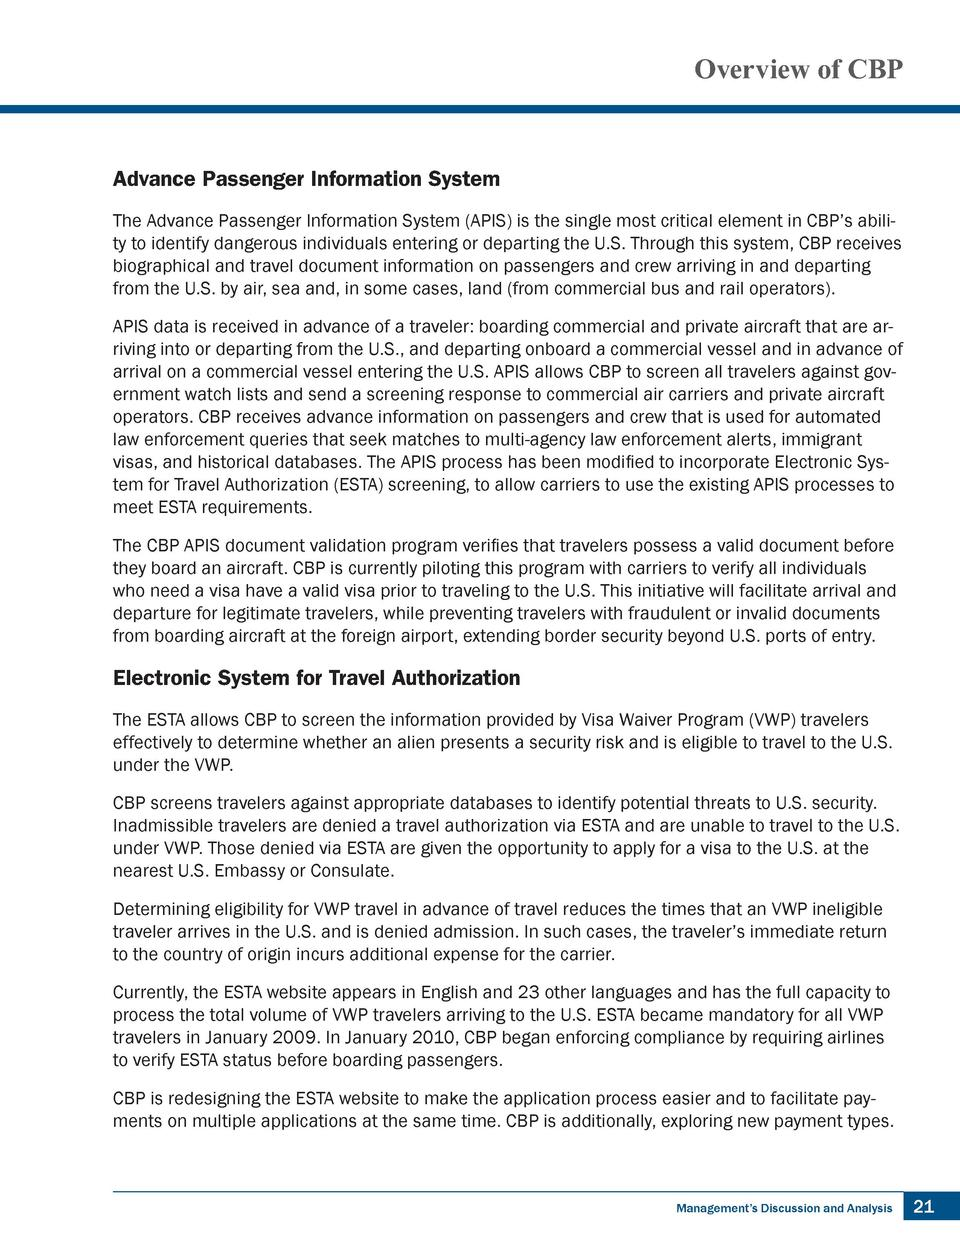 Overview of CBP  Advance Passenger Information System The Advance Passenger Information System  APIS  is the single most c...